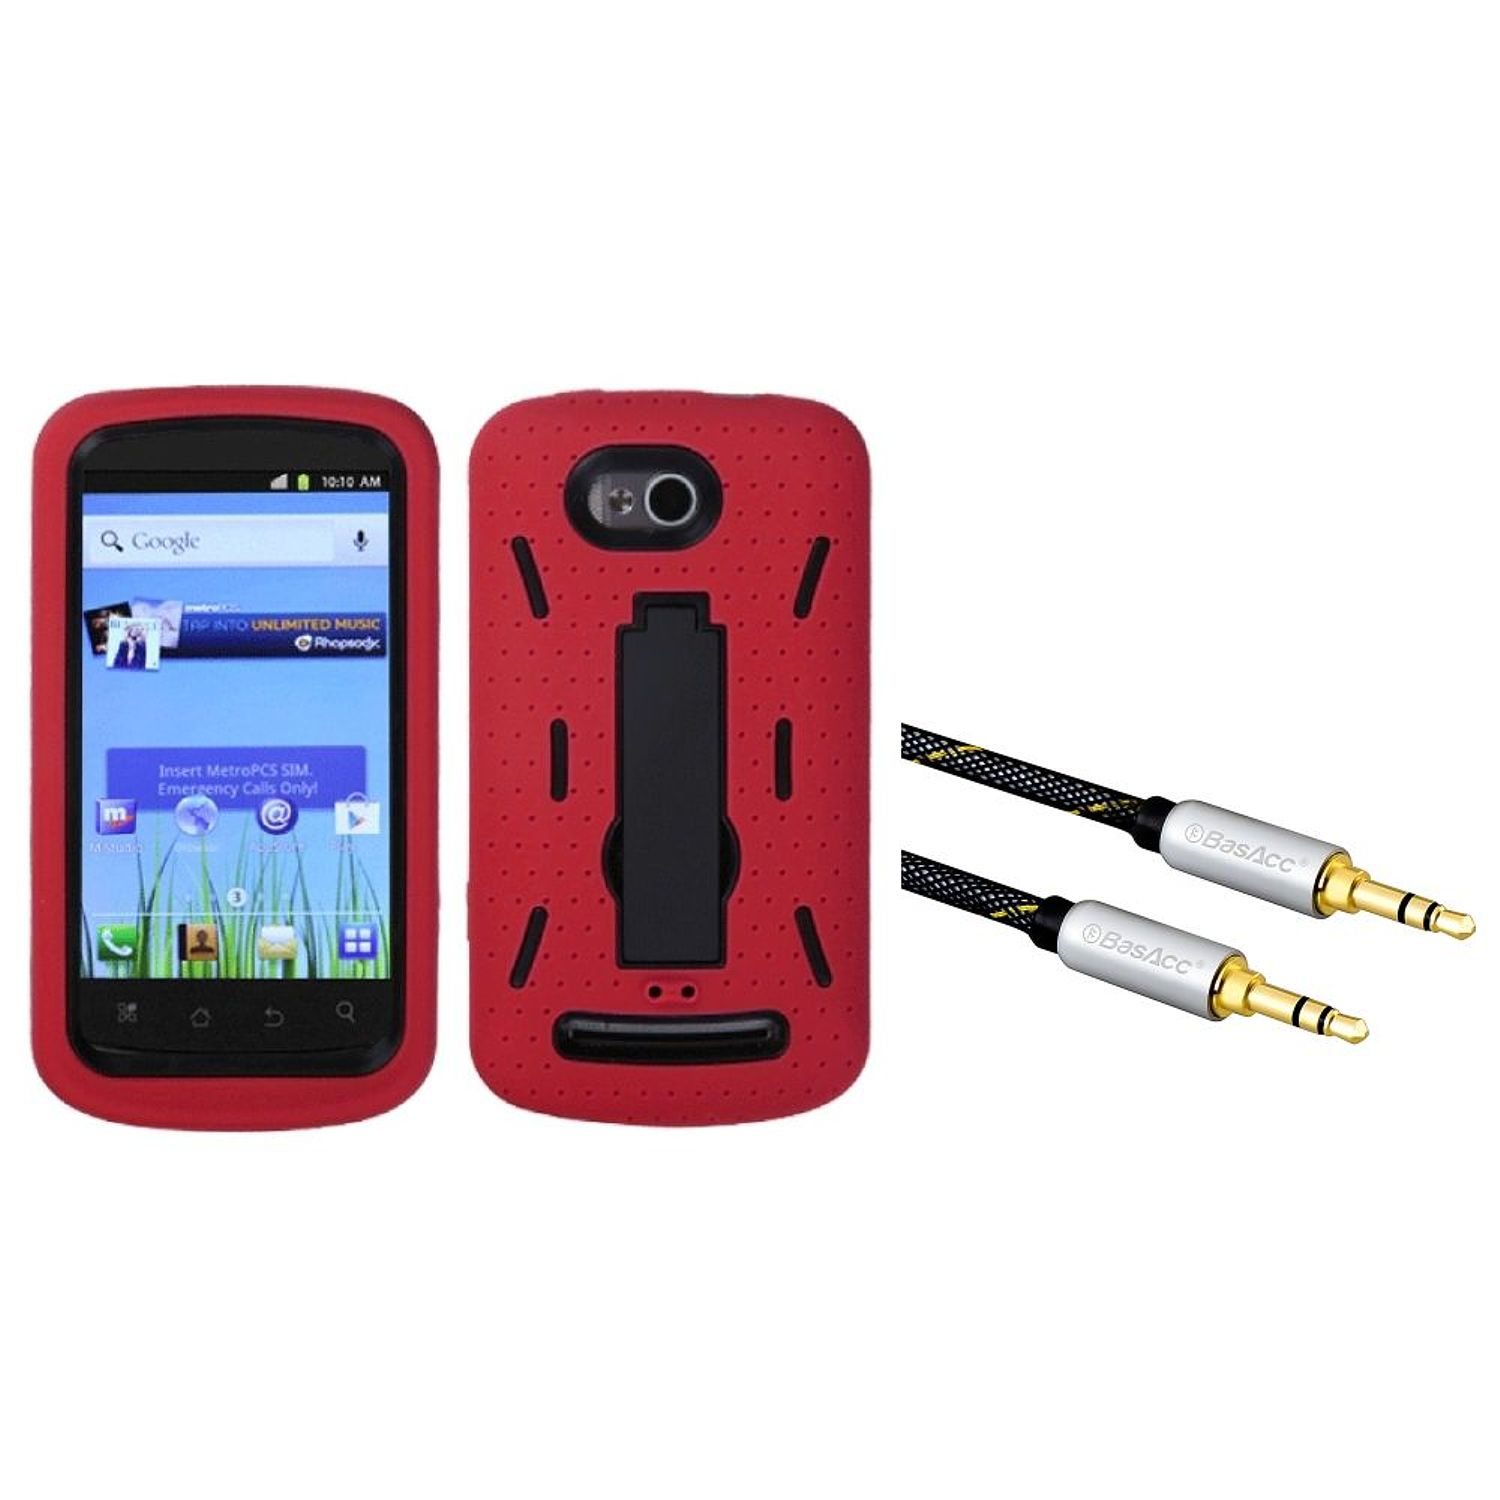 Insten Black/Red Symbiosis Stand Case for COOLPAD: 5860E (Quattro 4G) (+ 3.5mm Auxiliary Cable)